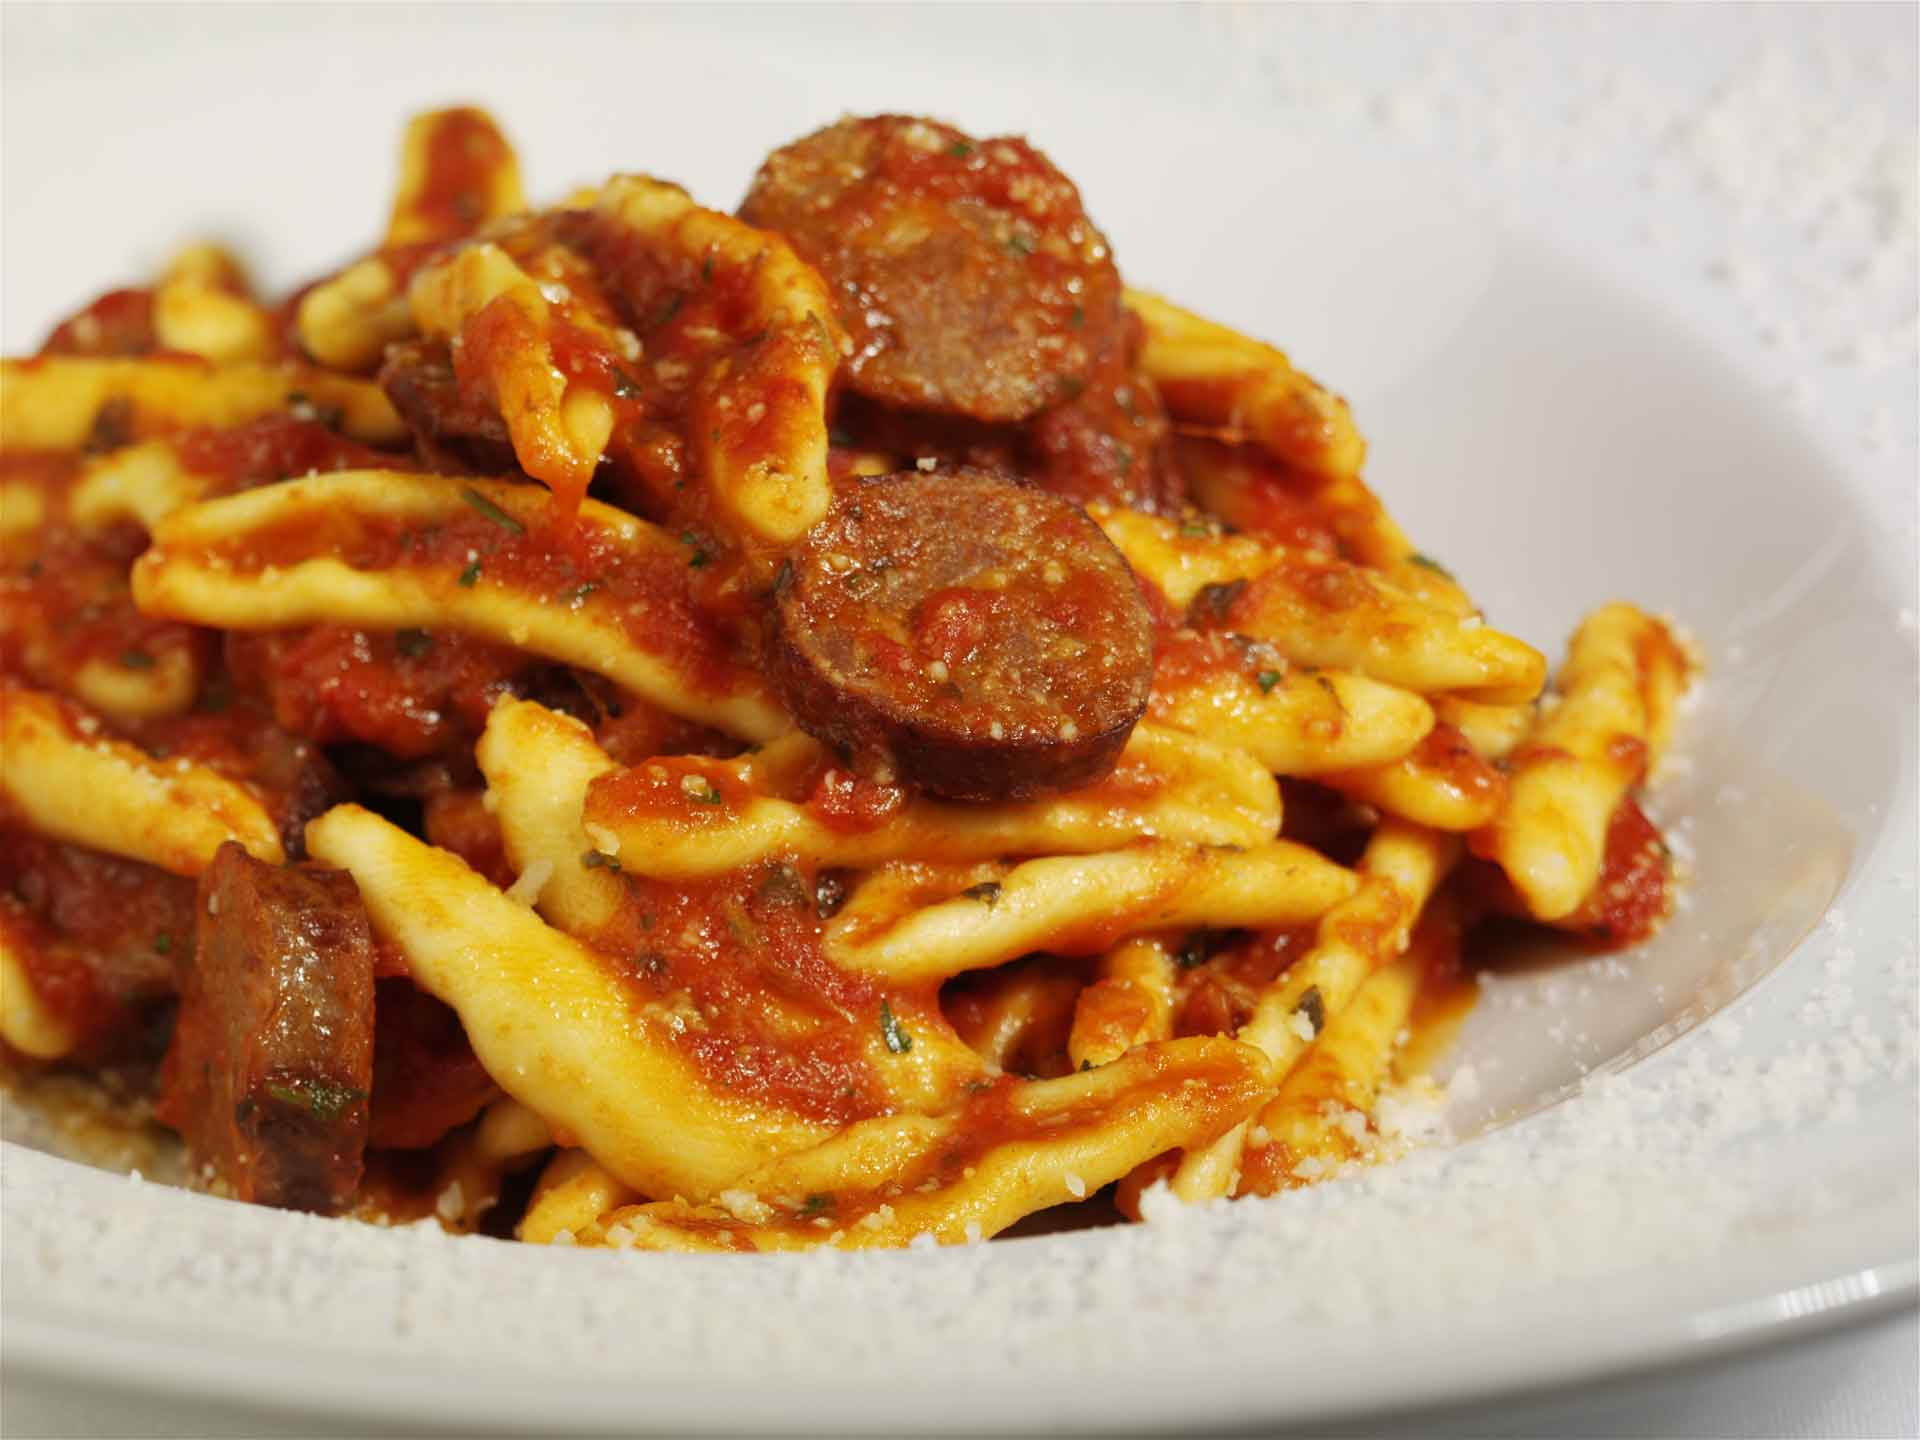 Cavatelli-with-Tomato-and-Sausage